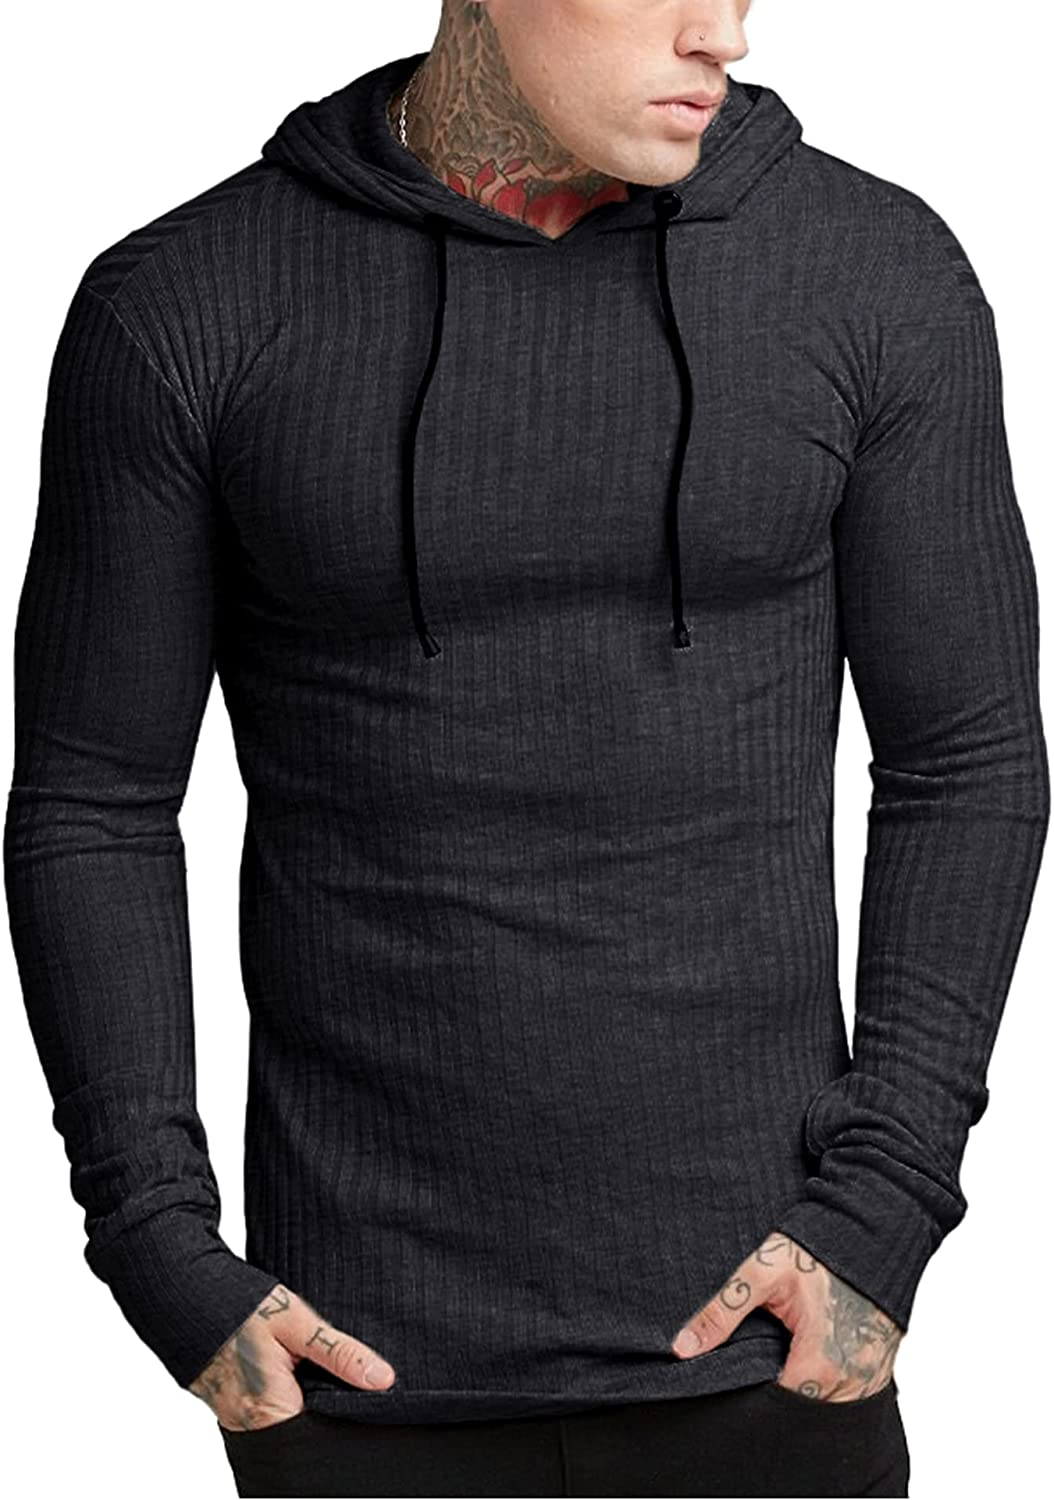 Babioboa Men's Hoodies Pullover Long Lightweight Ribbed 25% OFF Sale SALE% OFF Sleeve S